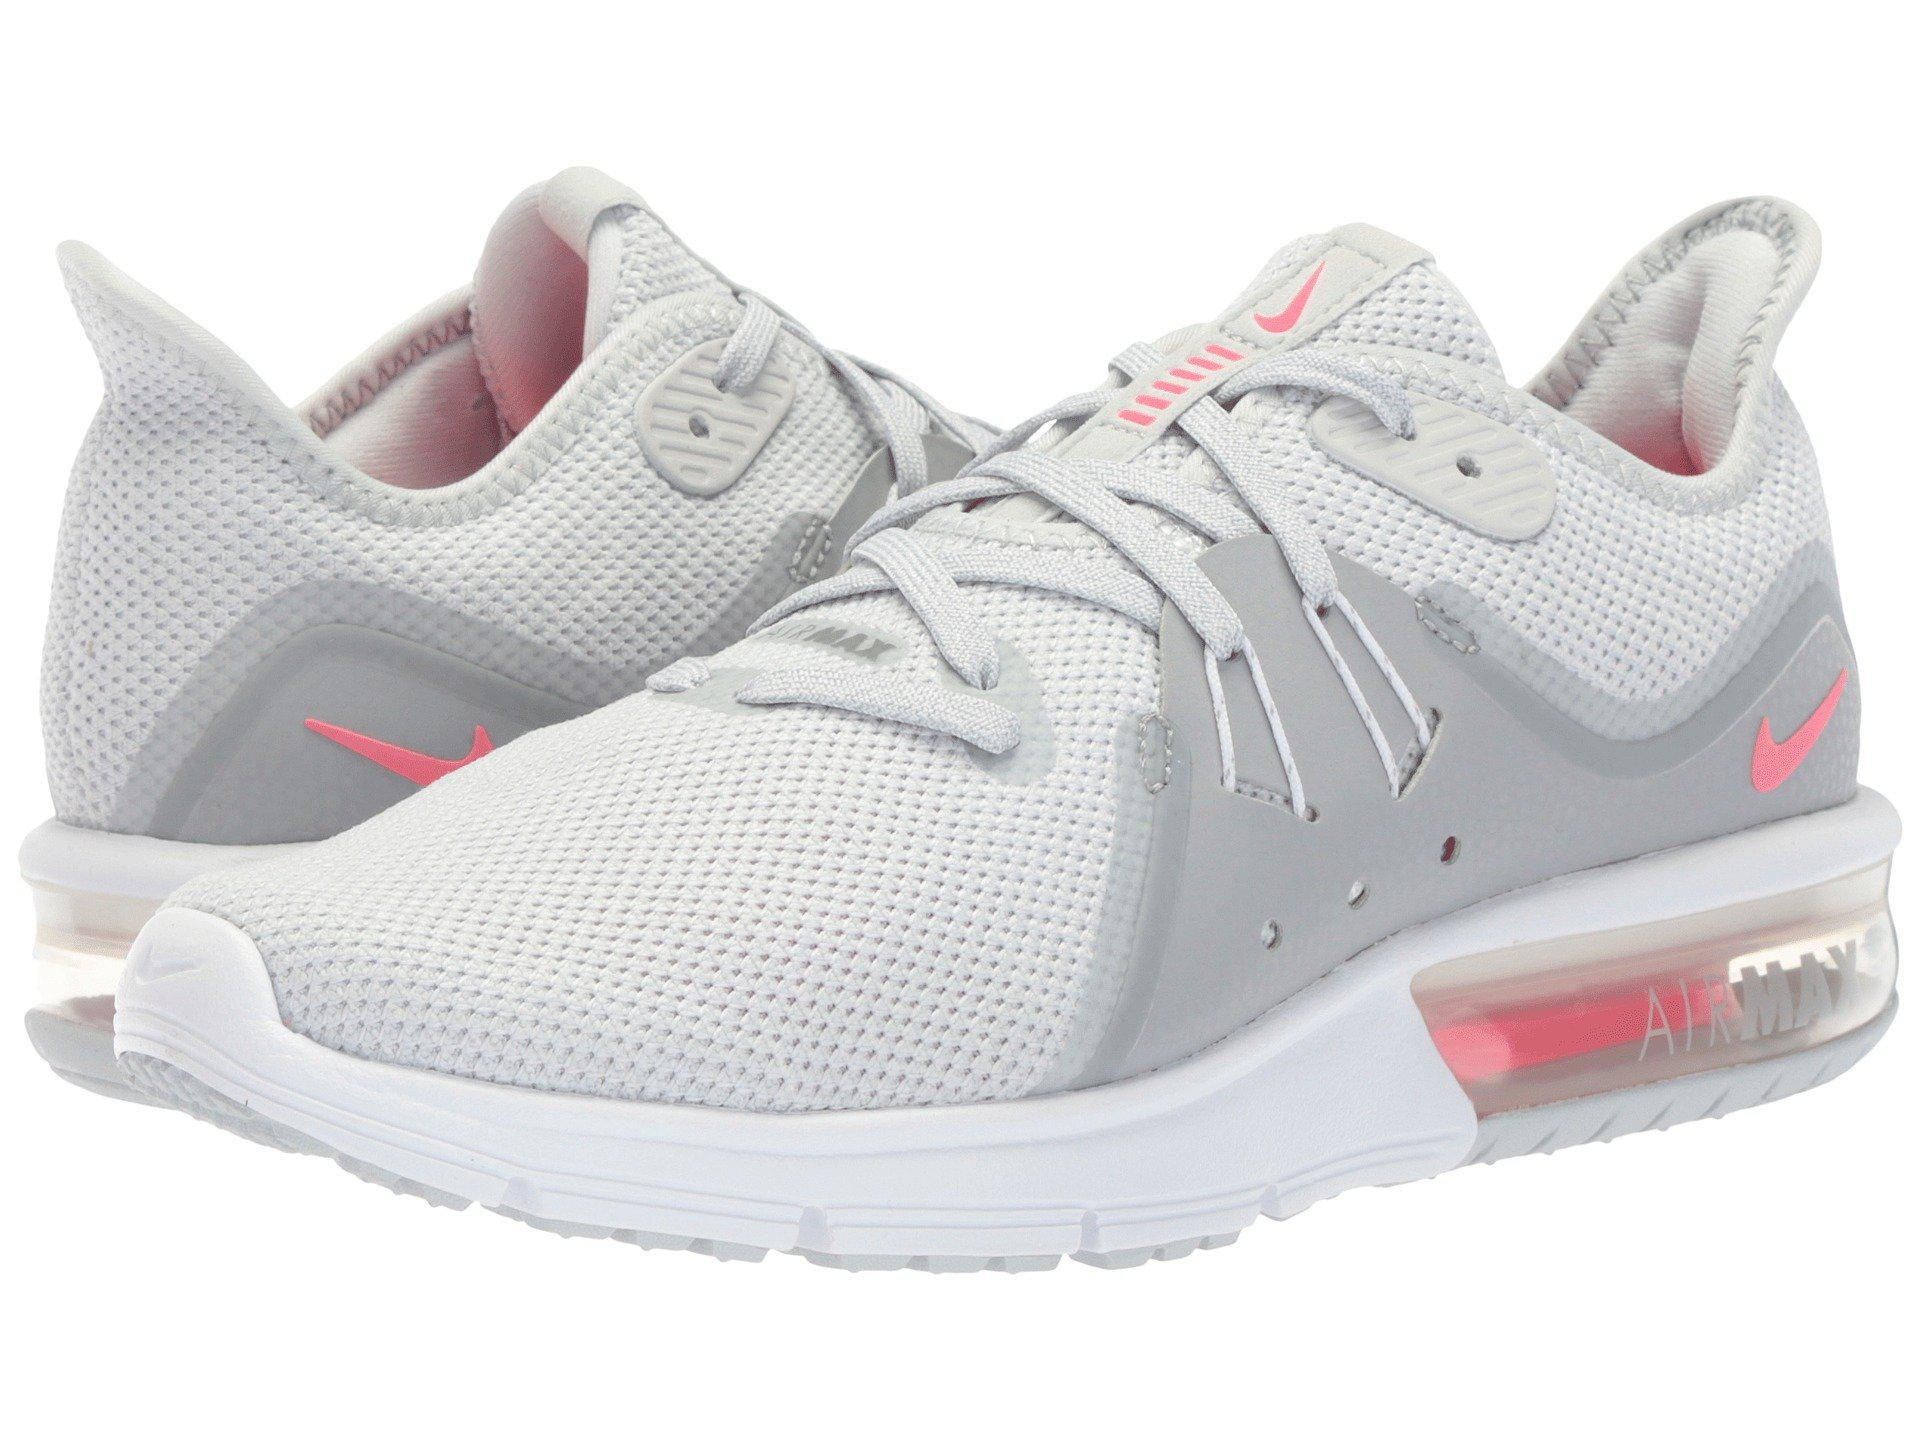 buy cheap official images coupon codes Air Max Sequent 3